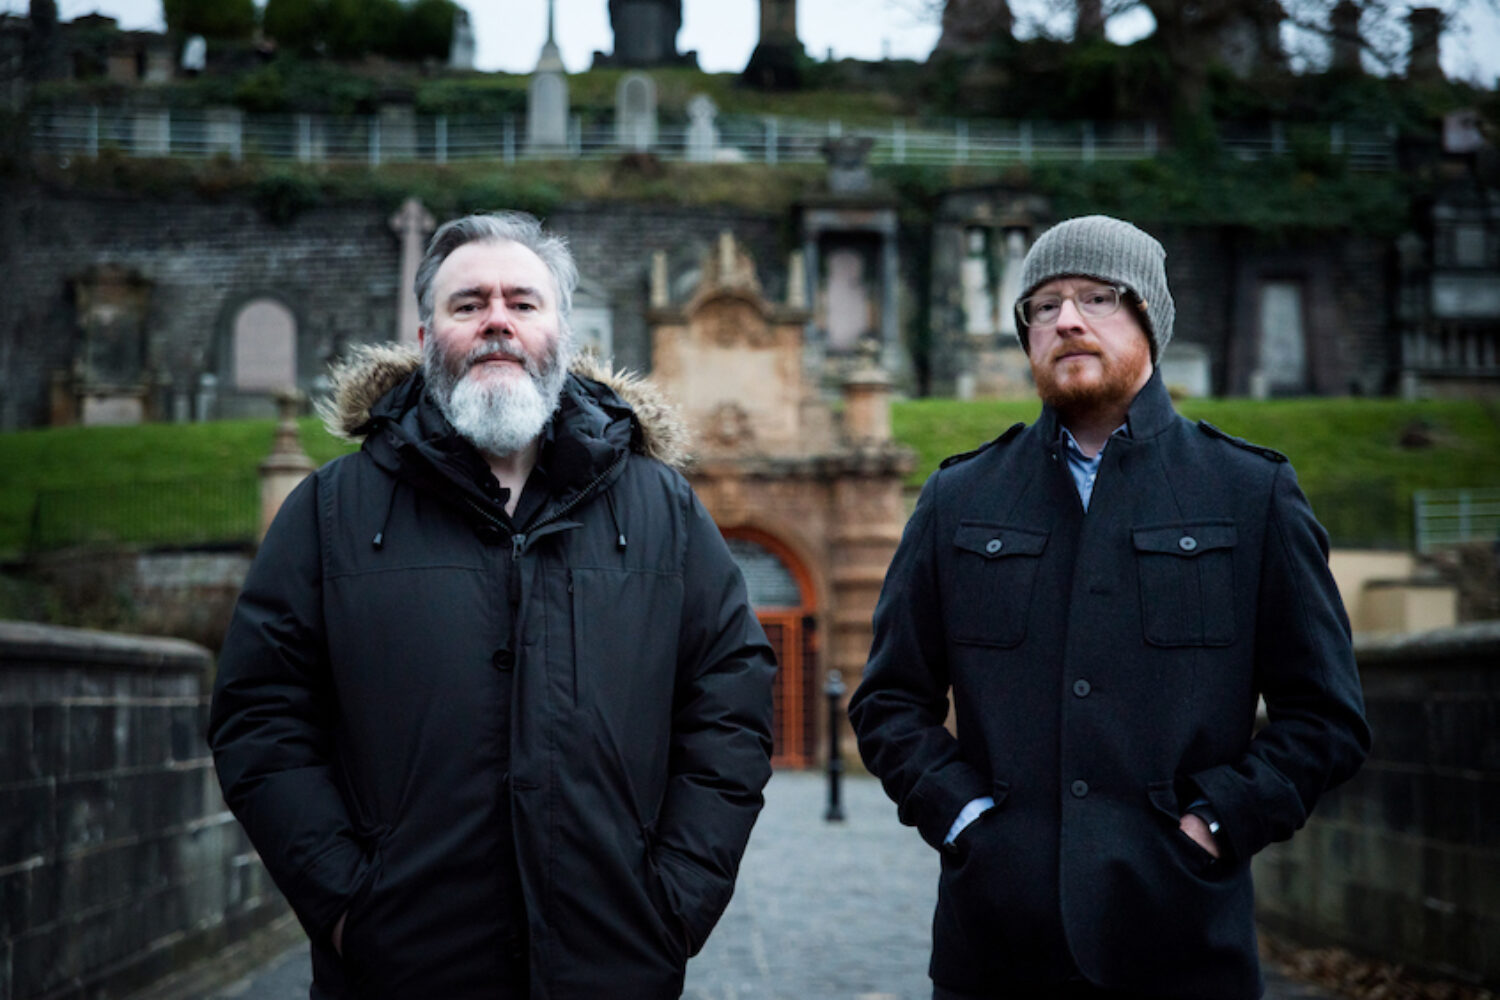 Arab Strap announce new album 'As Days Get Dark'